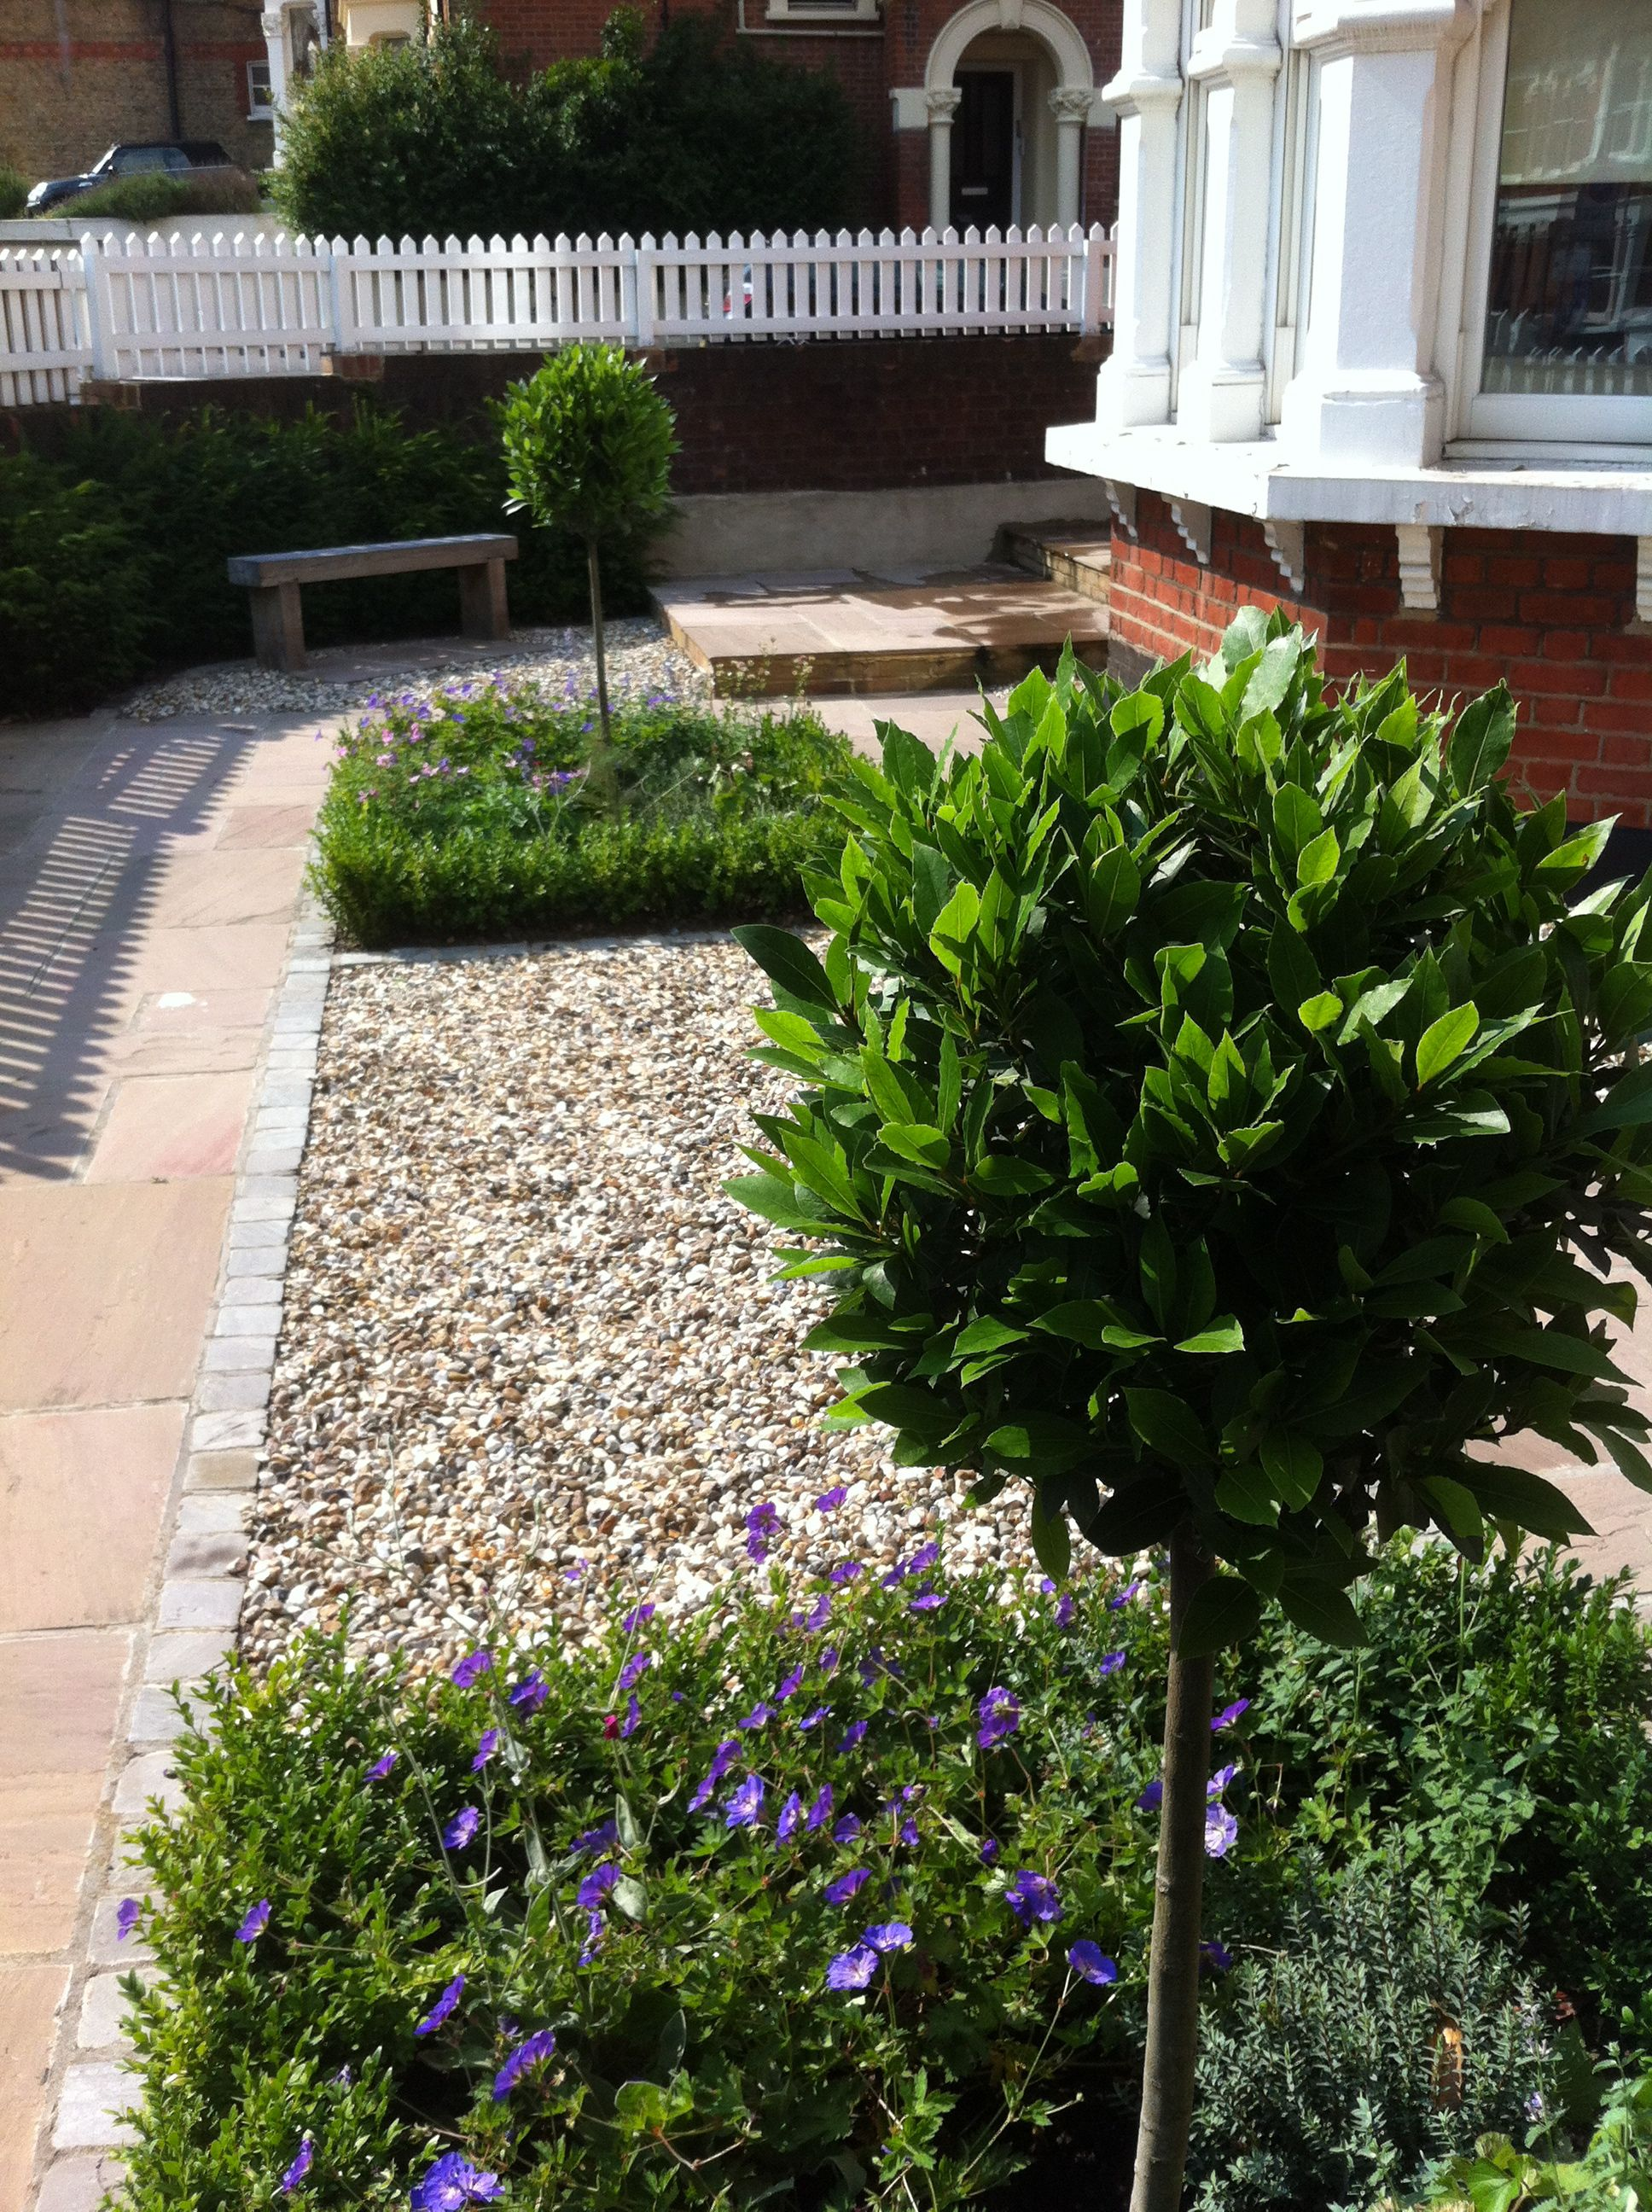 Wimbledon low maintenance front garden our forever home for Very small garden design ideas uk